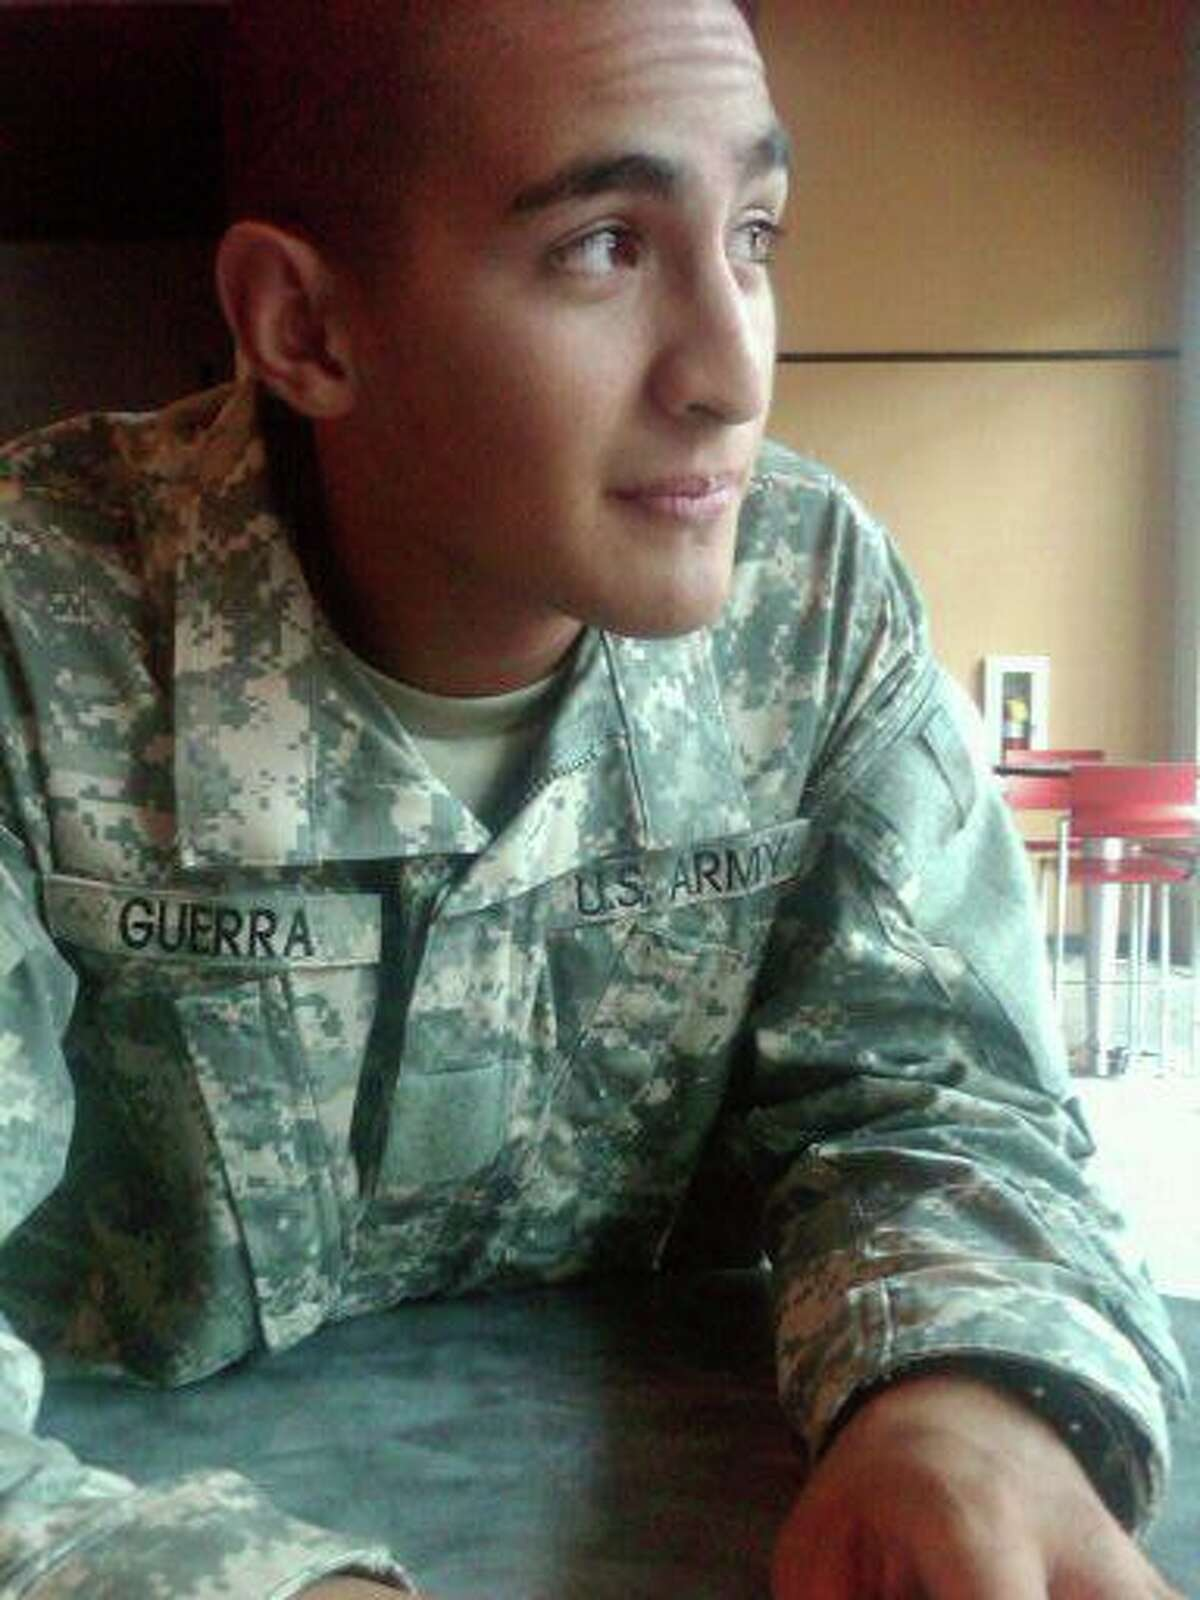 Jose Alberto Guerra, 19, was fatally shot by a Bexar County sergeant early Sunday.